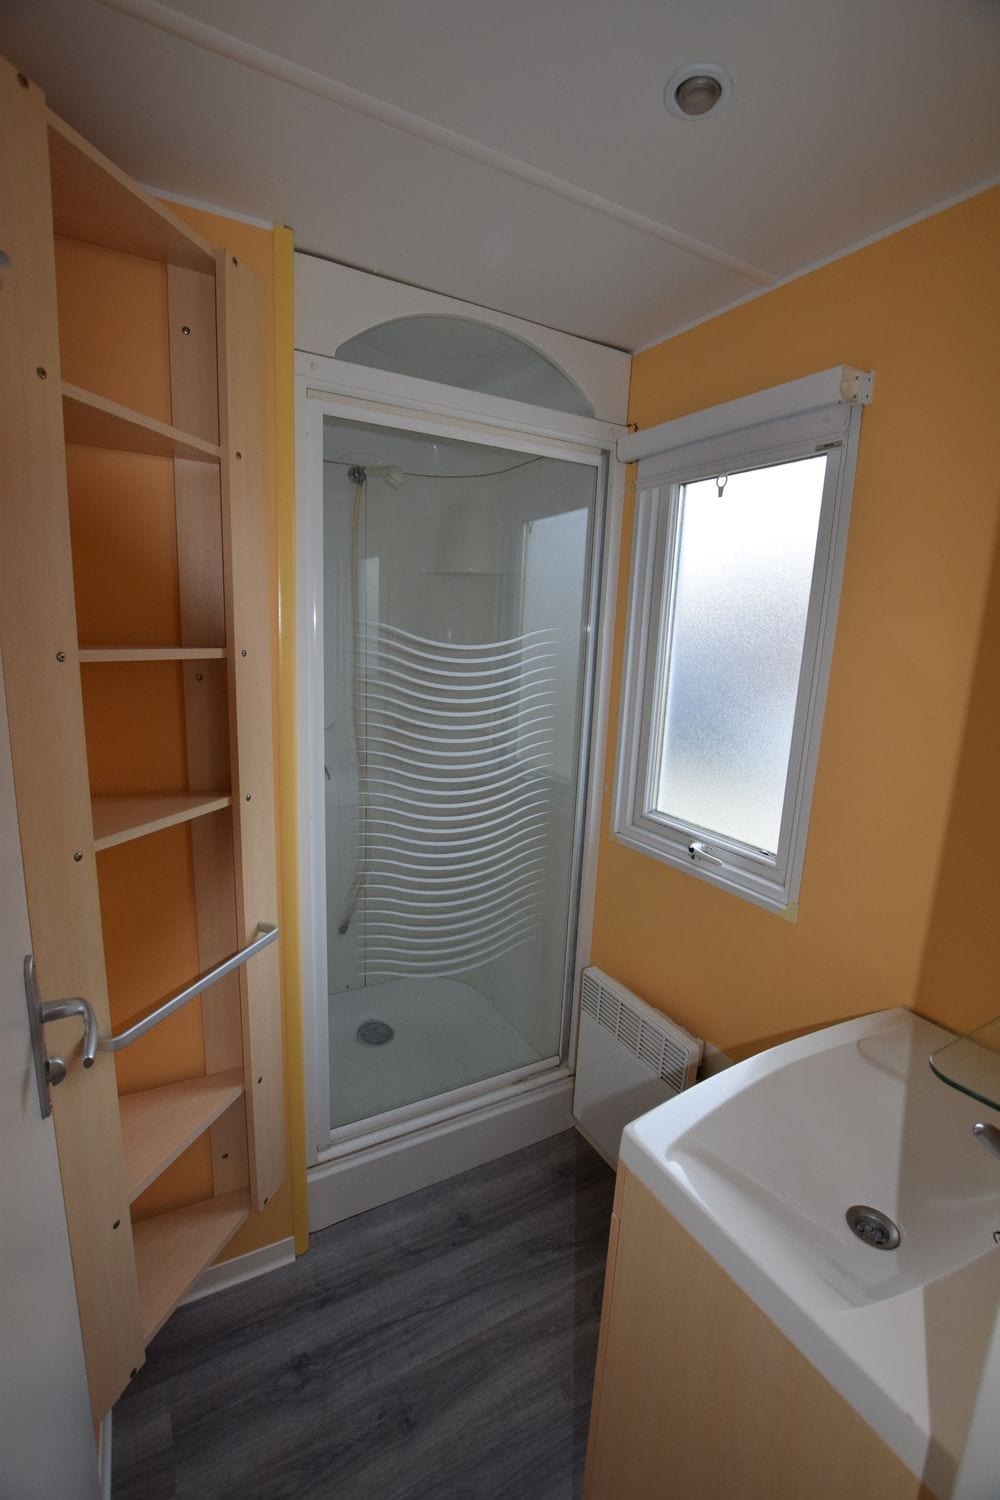 Irm Sup Constellation - 2006 - Mobilhome d'oc - 12 500€ - Zen Mobil home